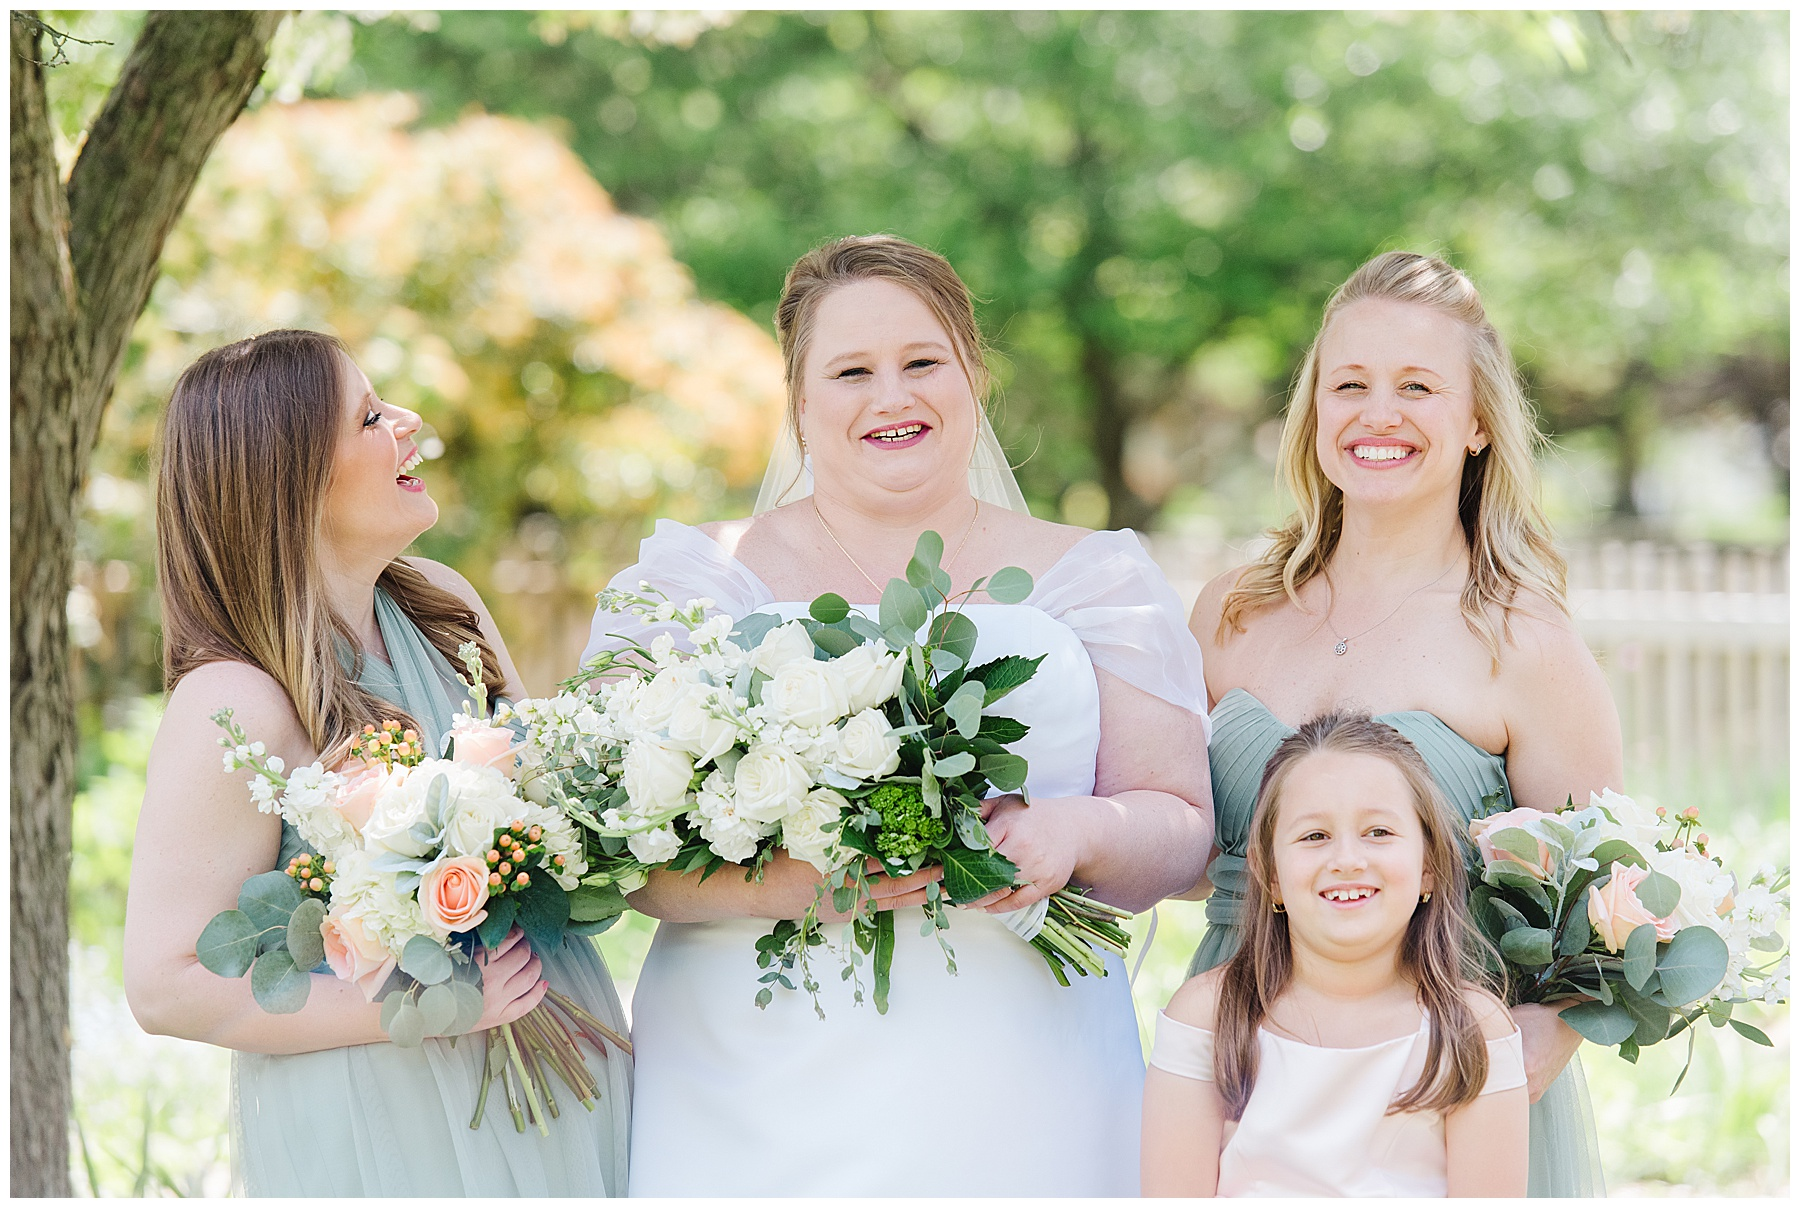 foster park fort wayne indiana wedding photographer_0243